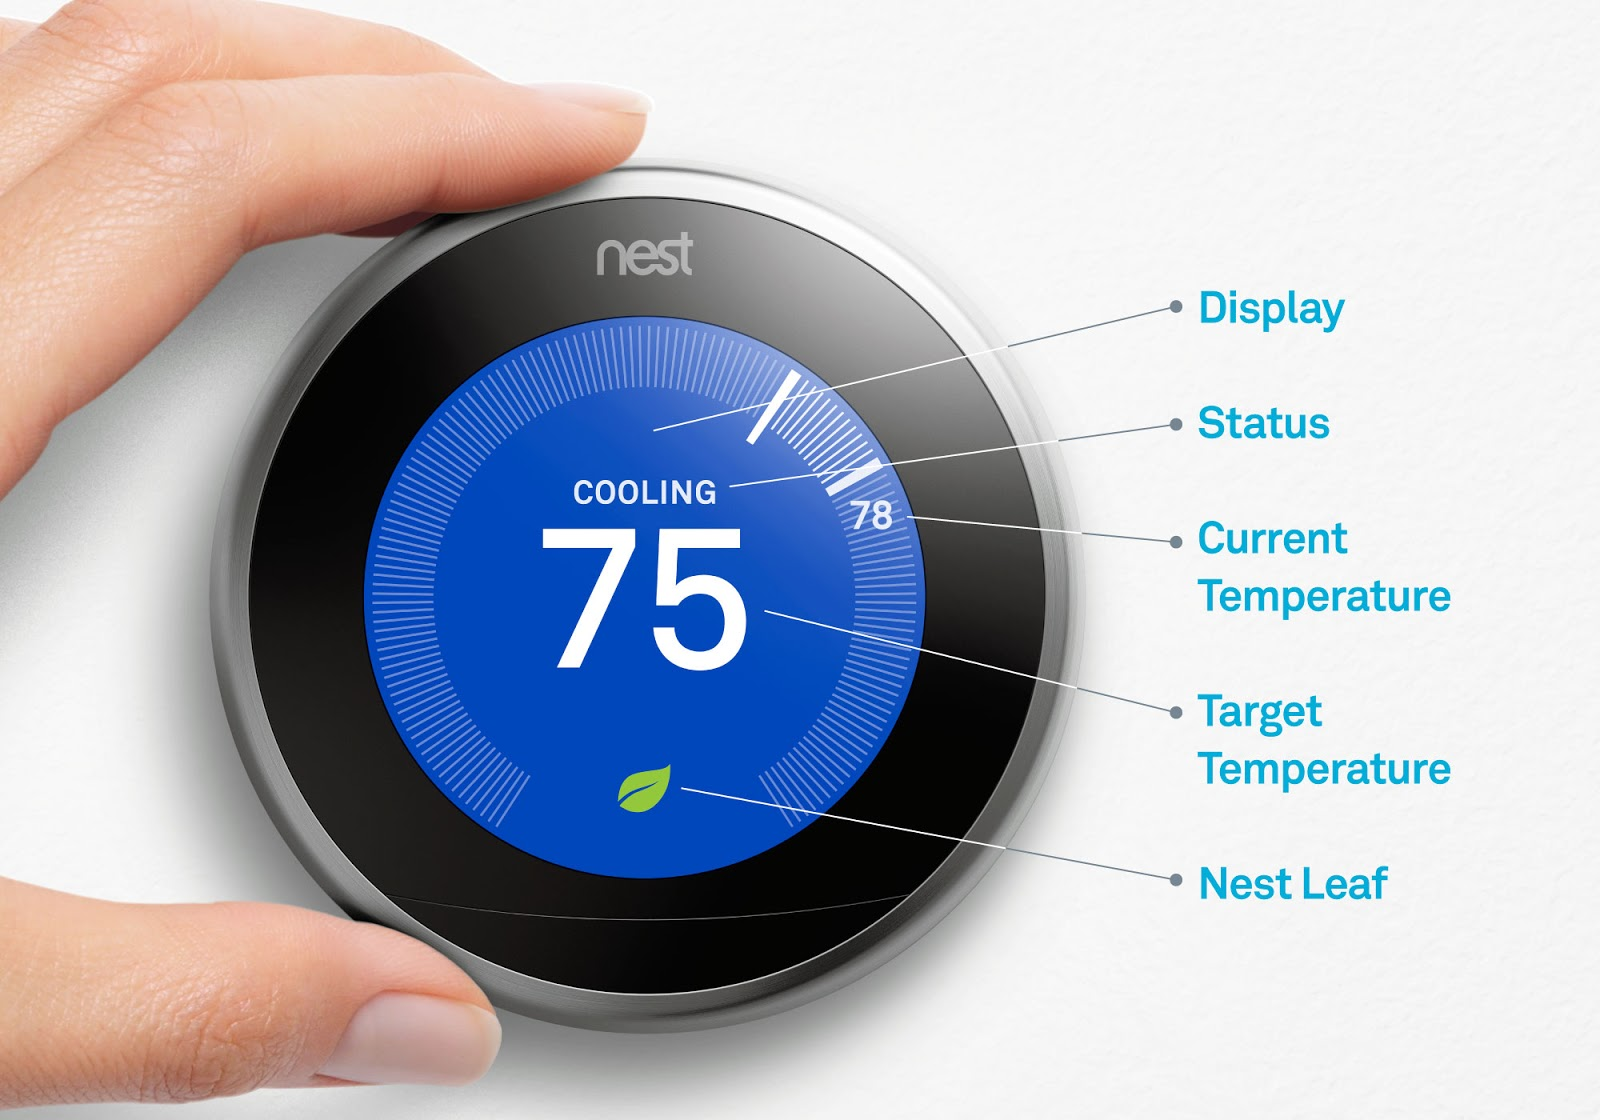 Nest thermostat temp control screen